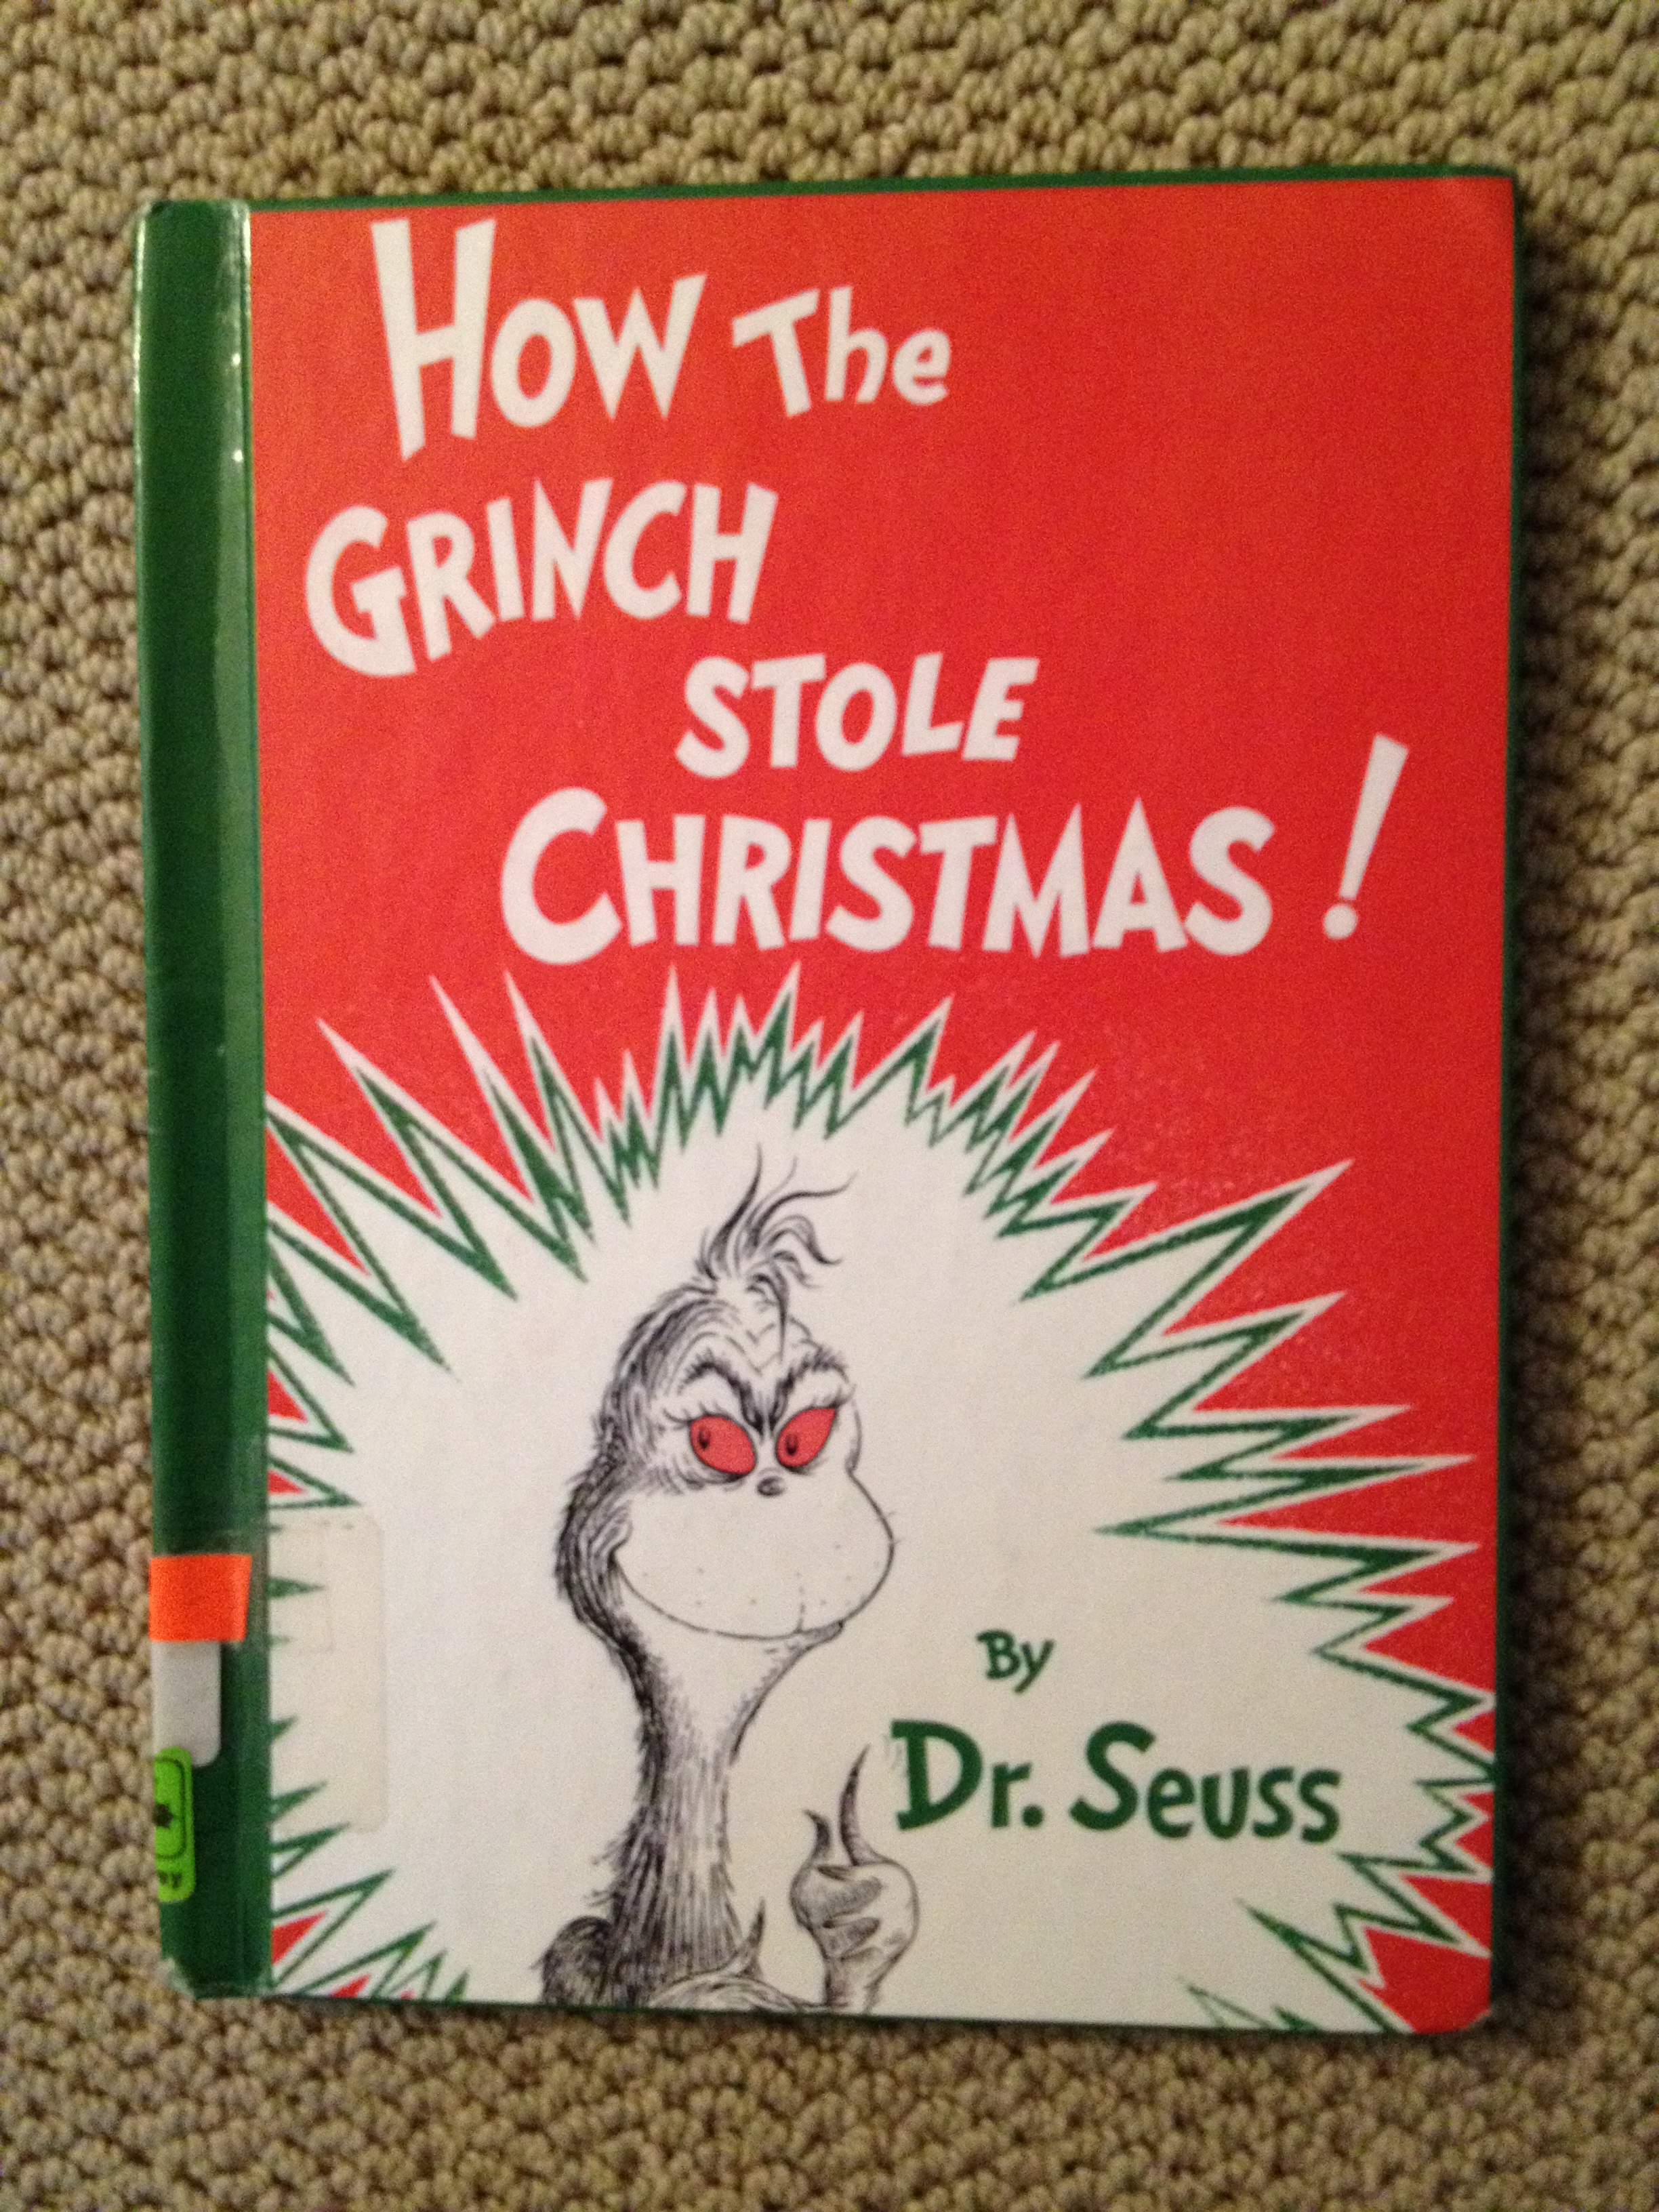 How The Grinch Stole Christmas Book Cover.How The Grinch Stole Christmas Corporate Style By All